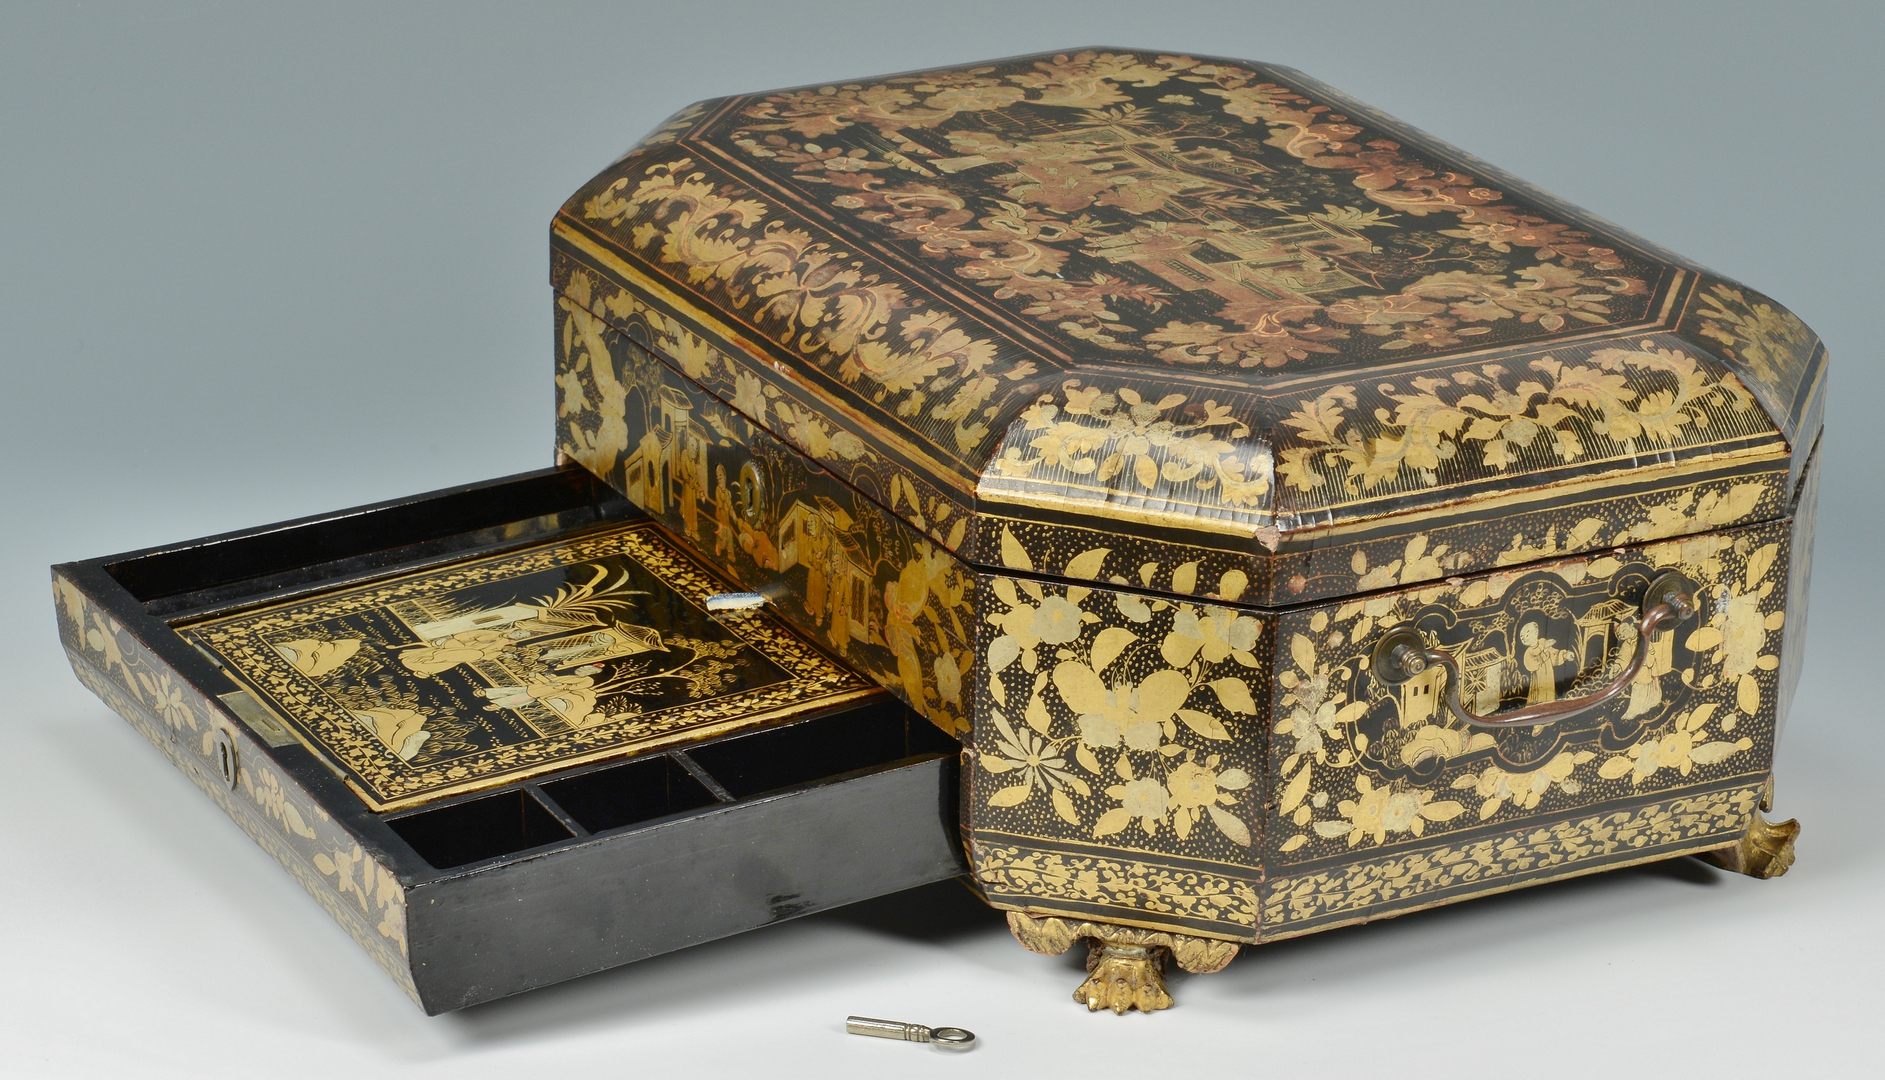 Lot 3088125: Gilt Lacquer Chinoiserie Sewing or Work Box